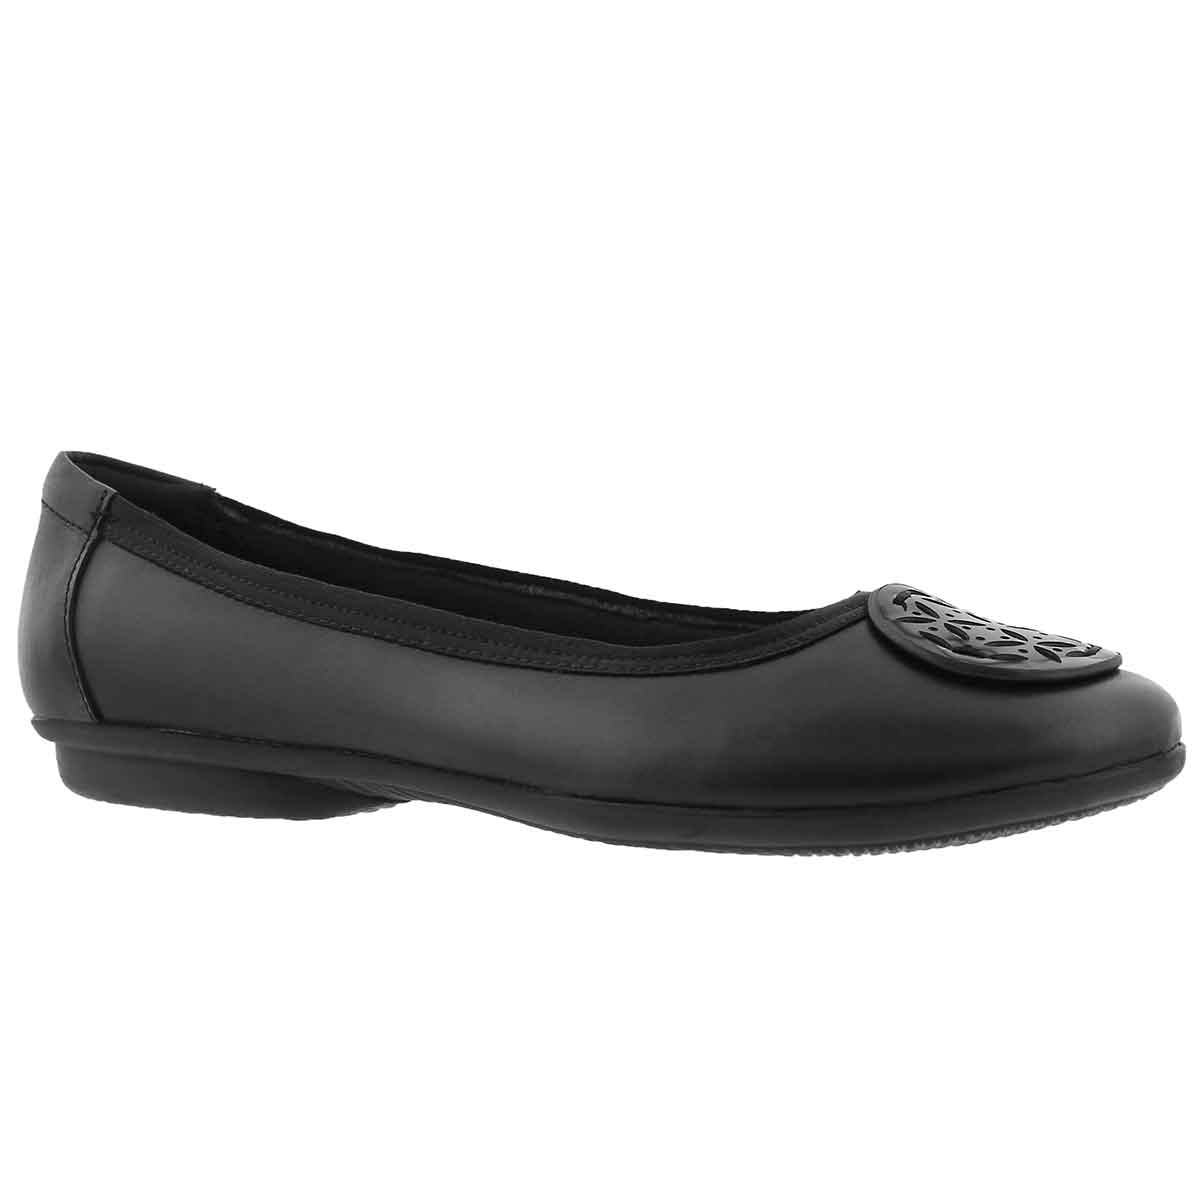 Women's GRACELIN LOLA black flats